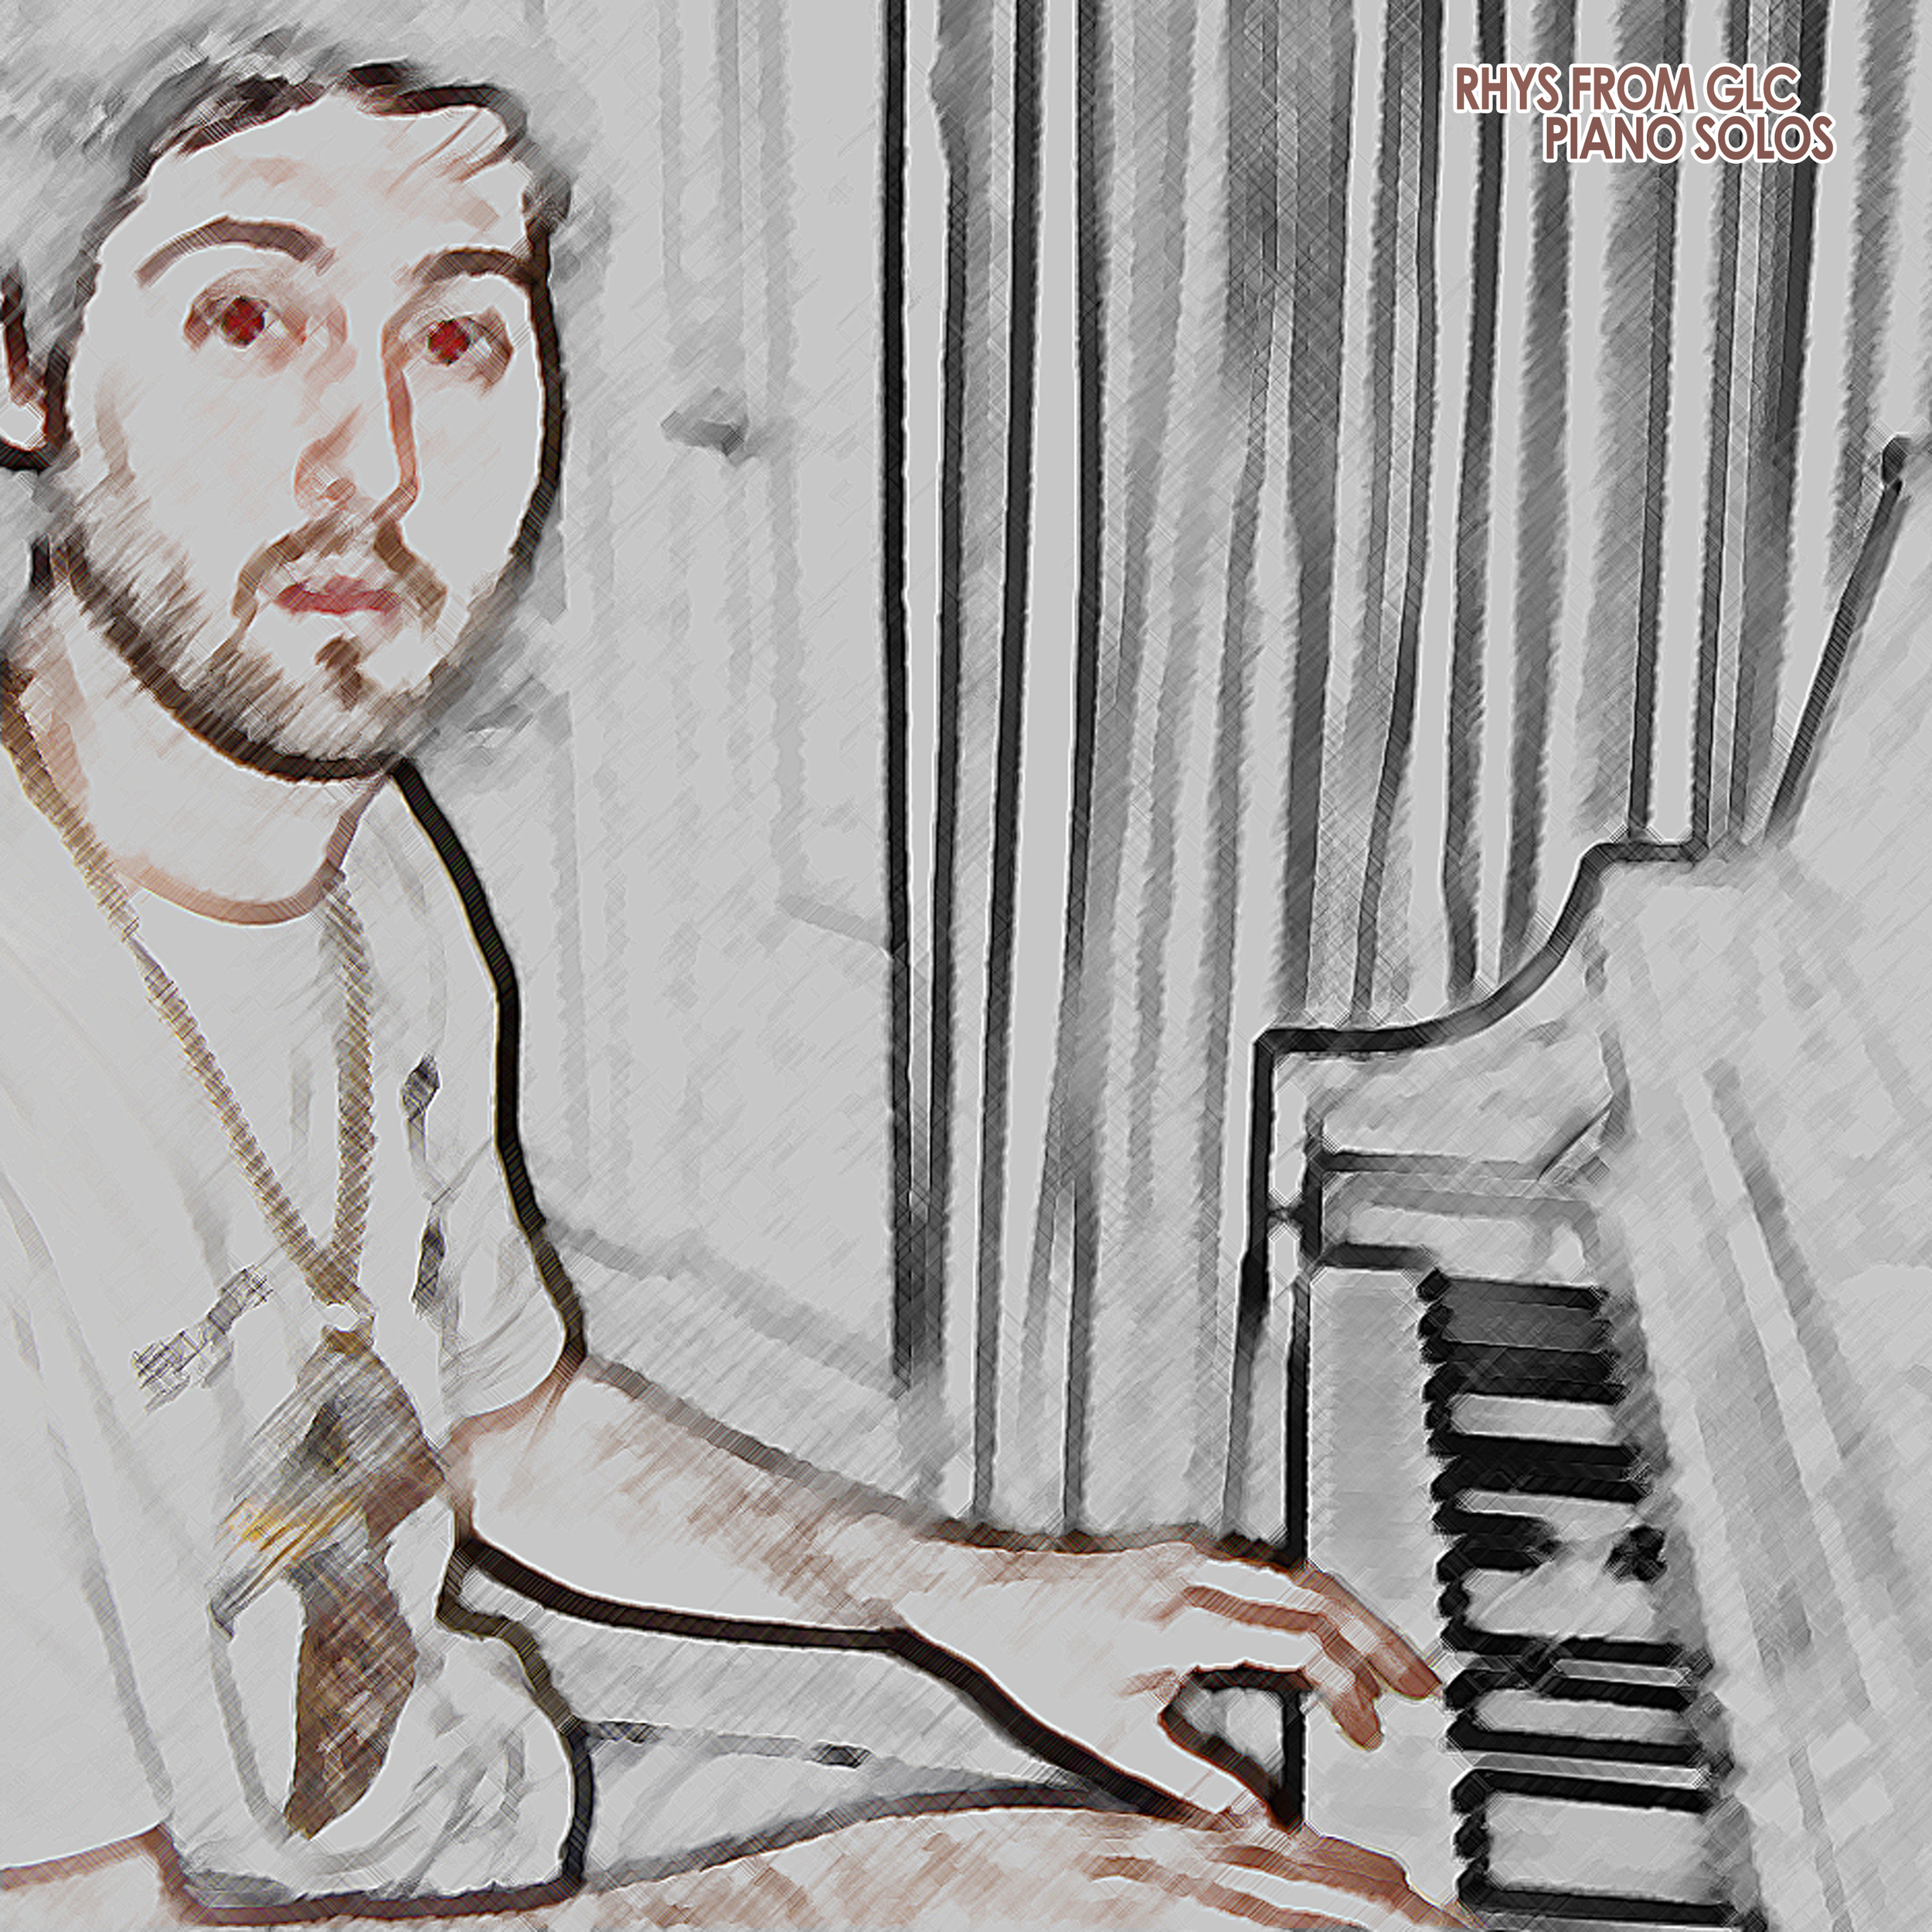 A collection of piano compositions written and performed by the producer of Goldie Lookin Chain.